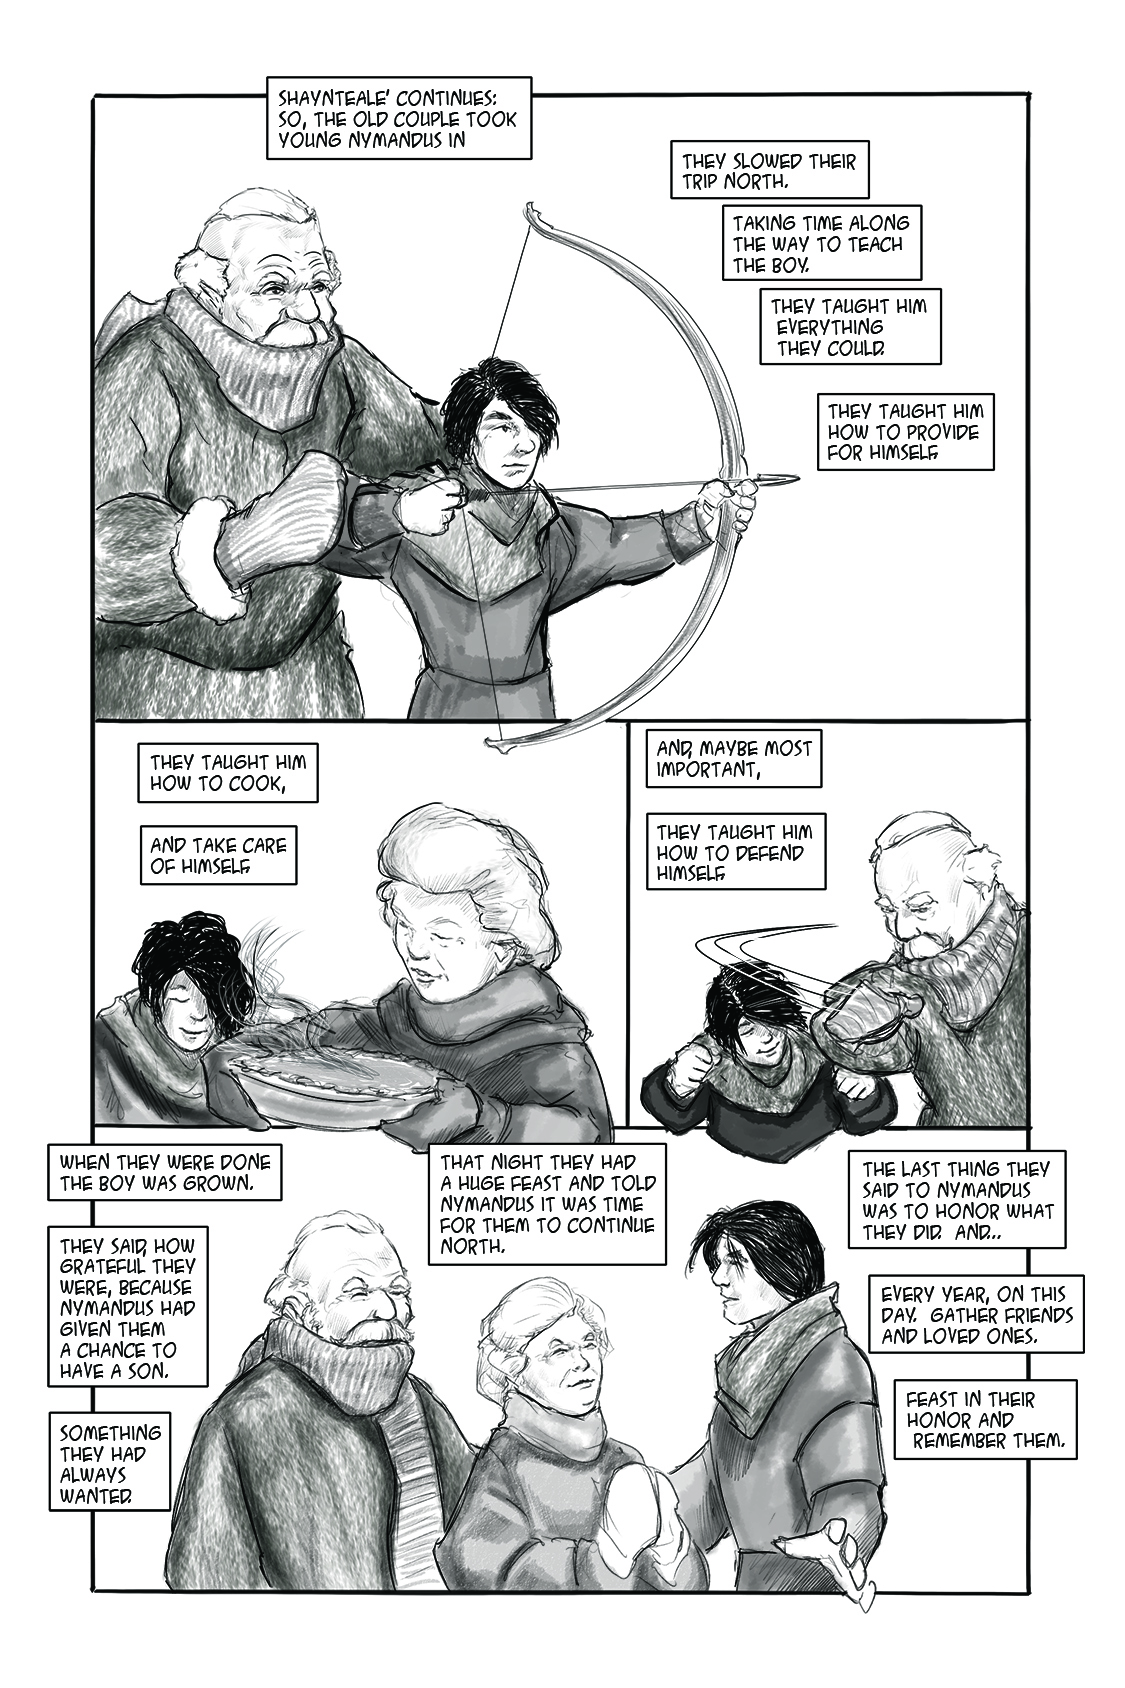 Champions Challenge Holiday Annual Pg 5